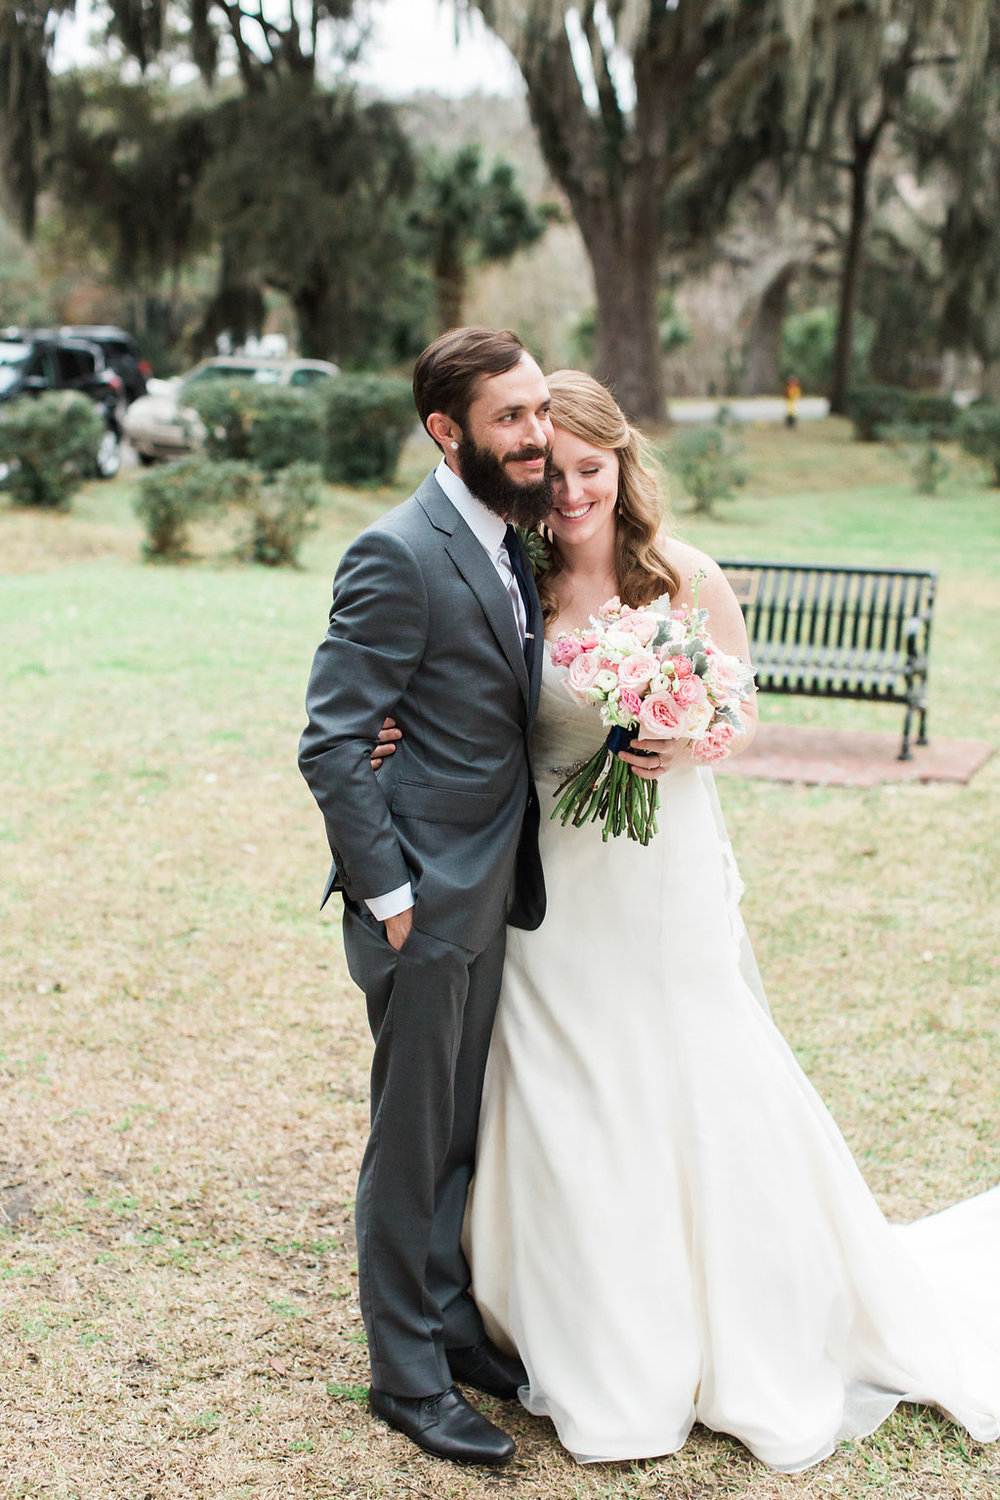 nancy-matt-wedding-whitfield-chapel-wedding-ivory-and-beau-bridal-boutique-the-happy-bloom-savannah-weddings-savannah-wedding-planner-savannah-bridal-boutique-savannah-florist-savannah-bridal-southern-wedding-30.jpg